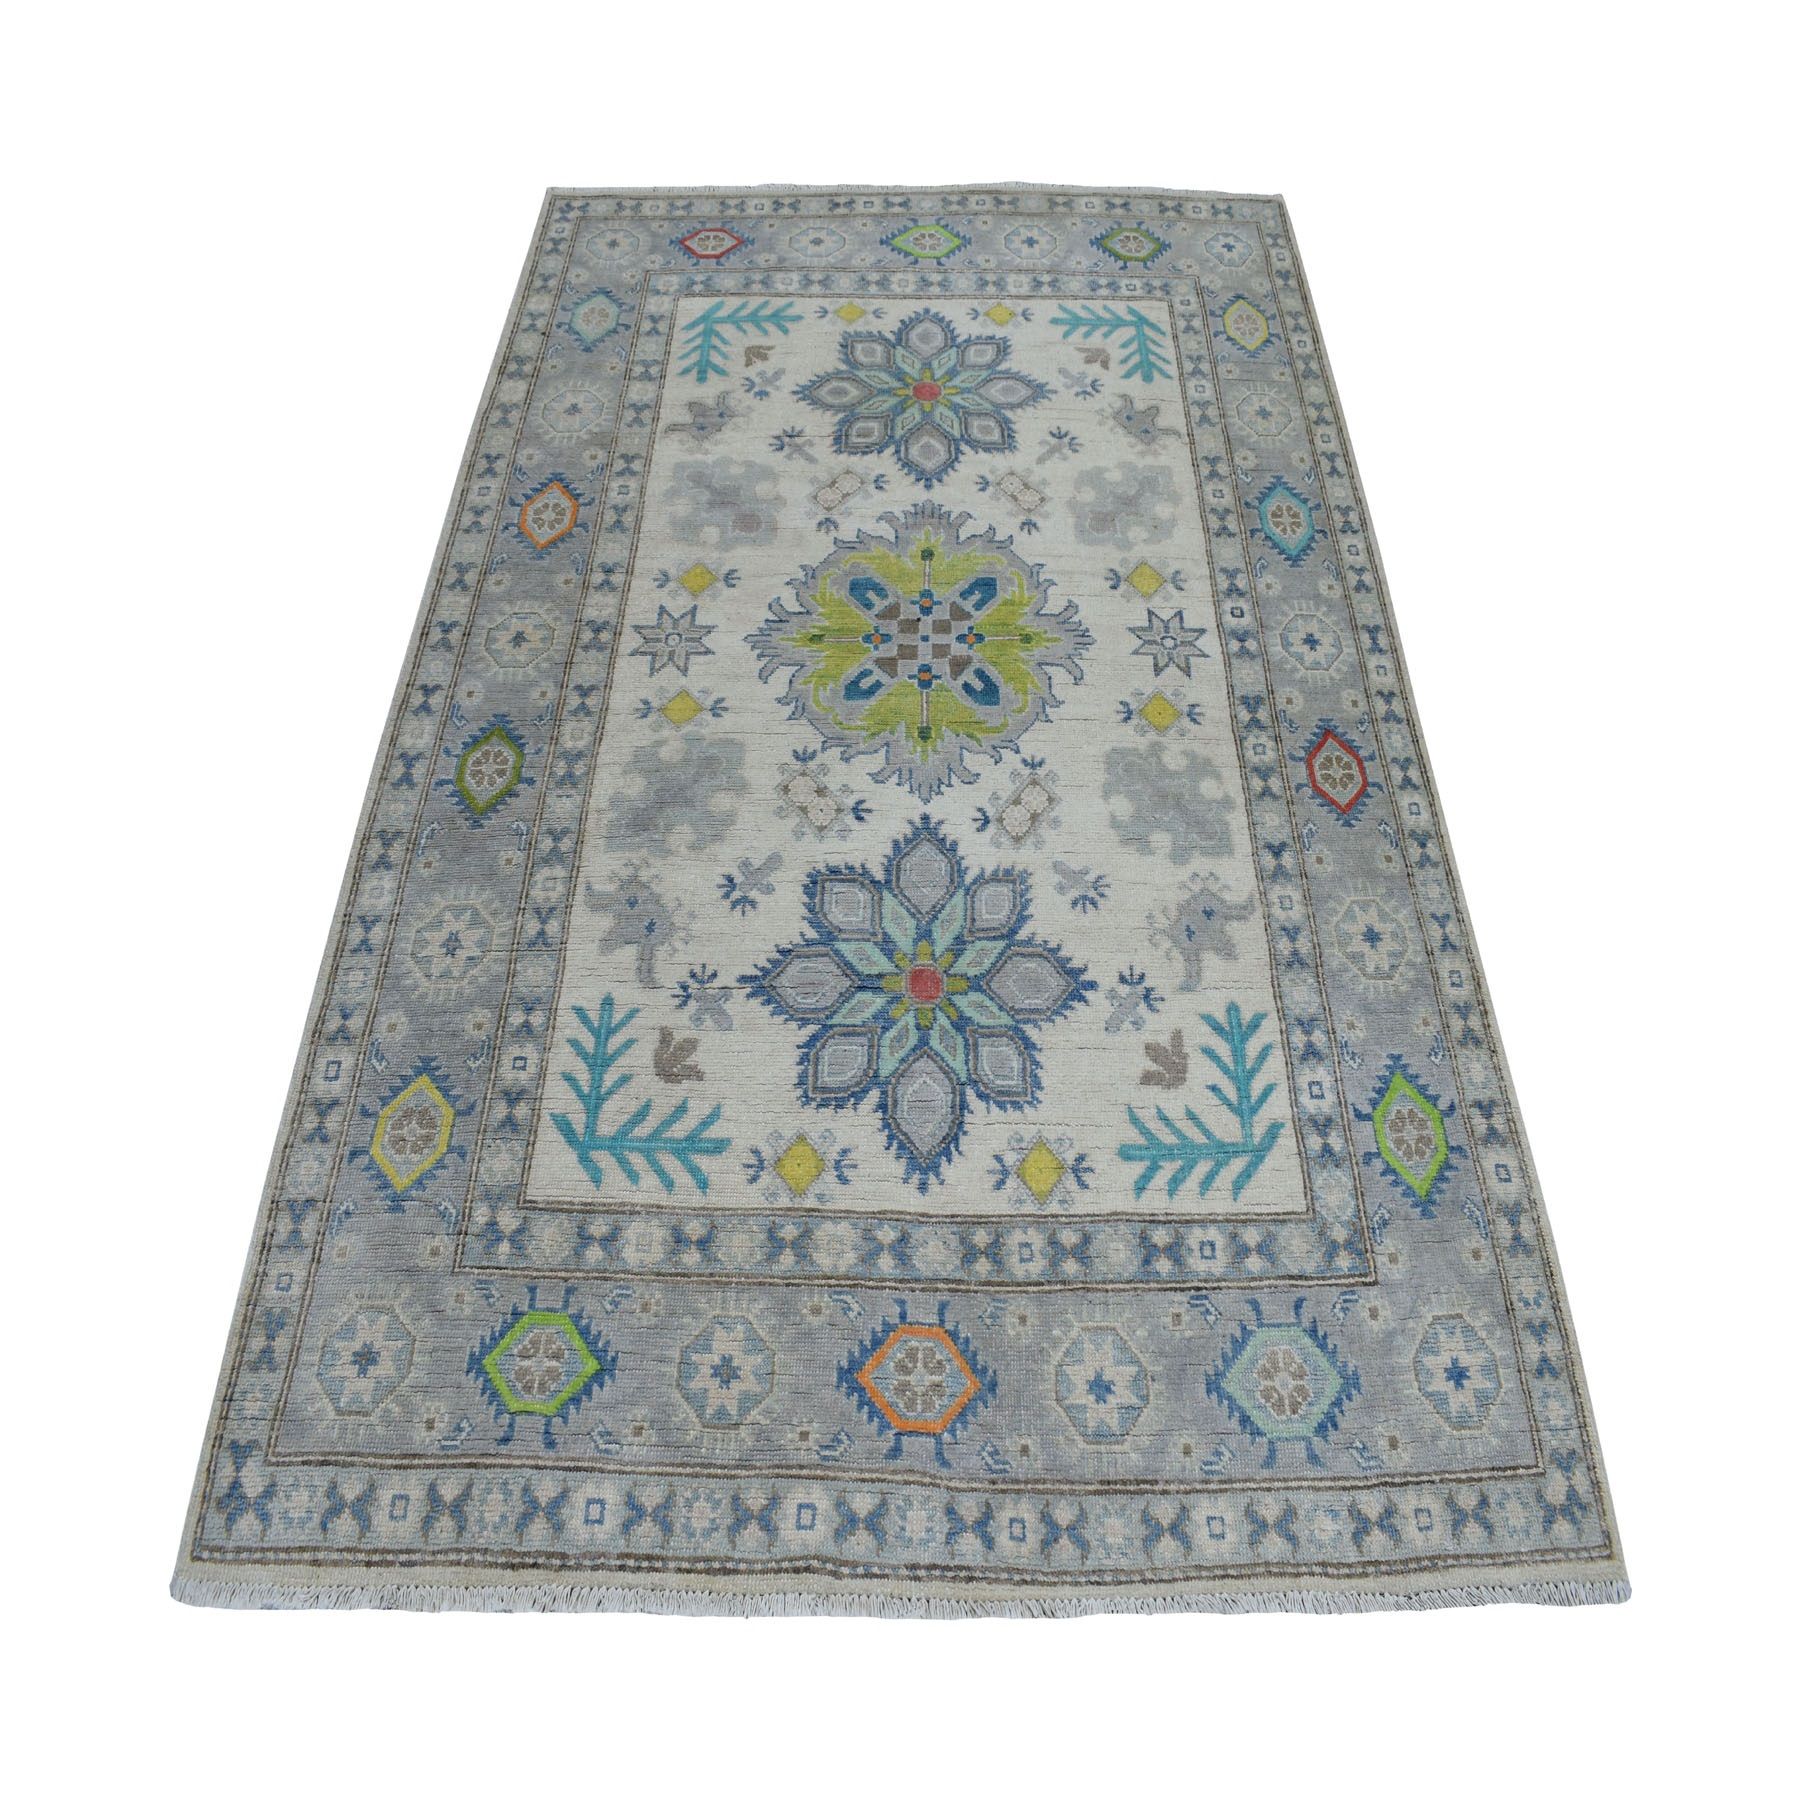 5'x7' Colorful Gray Fusion Kazak Pure Wool Geometric Design Hand Knotted Oriental Rug